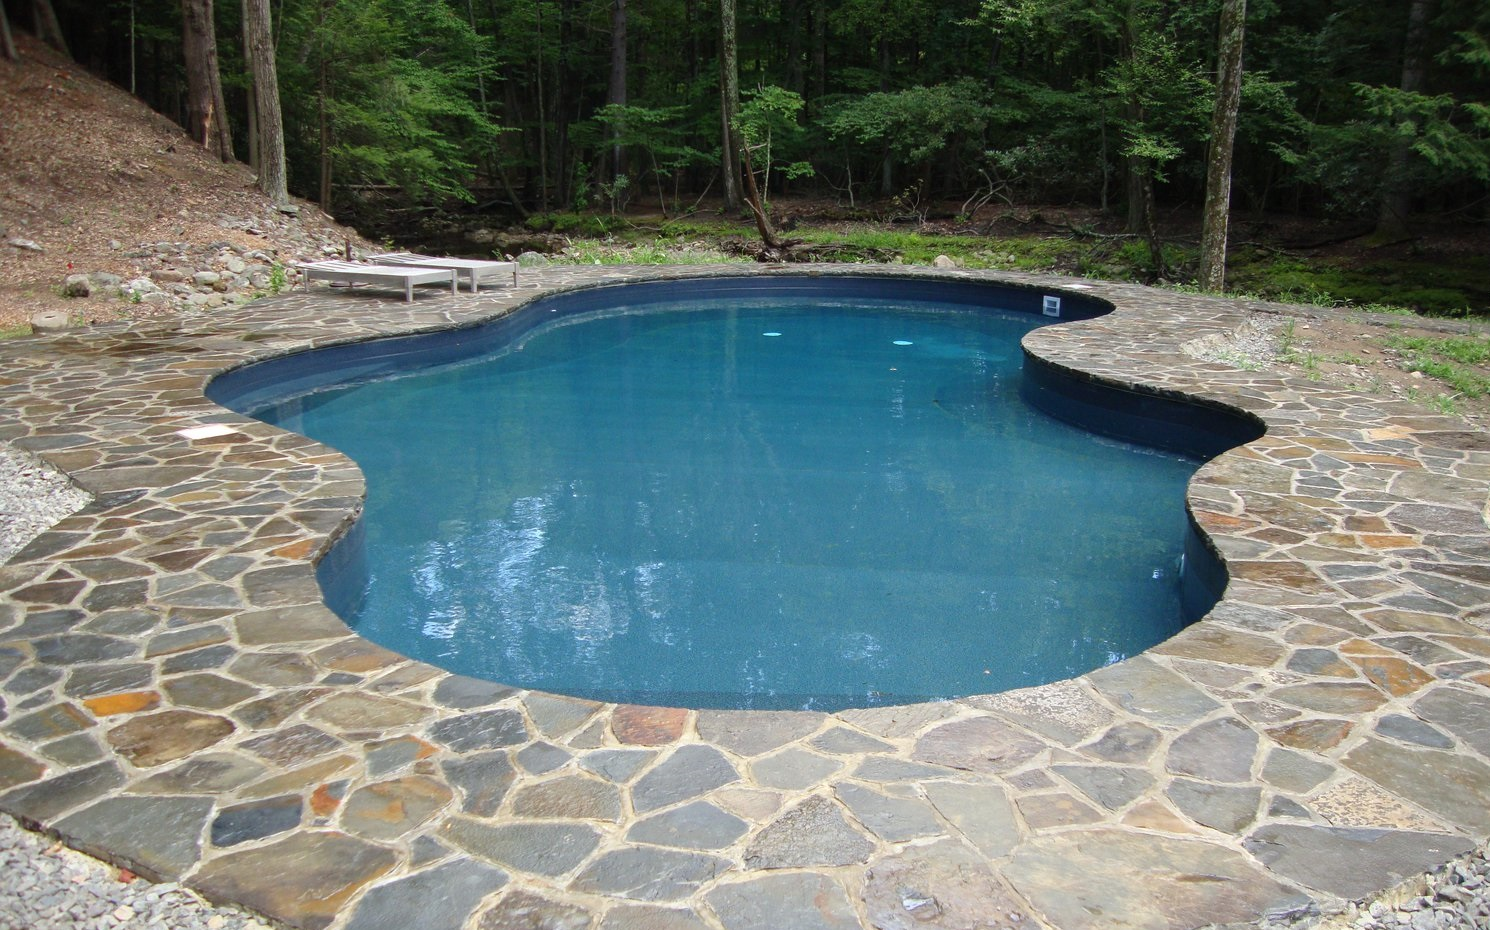 50 backyard swimming pool ideas ultimate home ideas. Black Bedroom Furniture Sets. Home Design Ideas